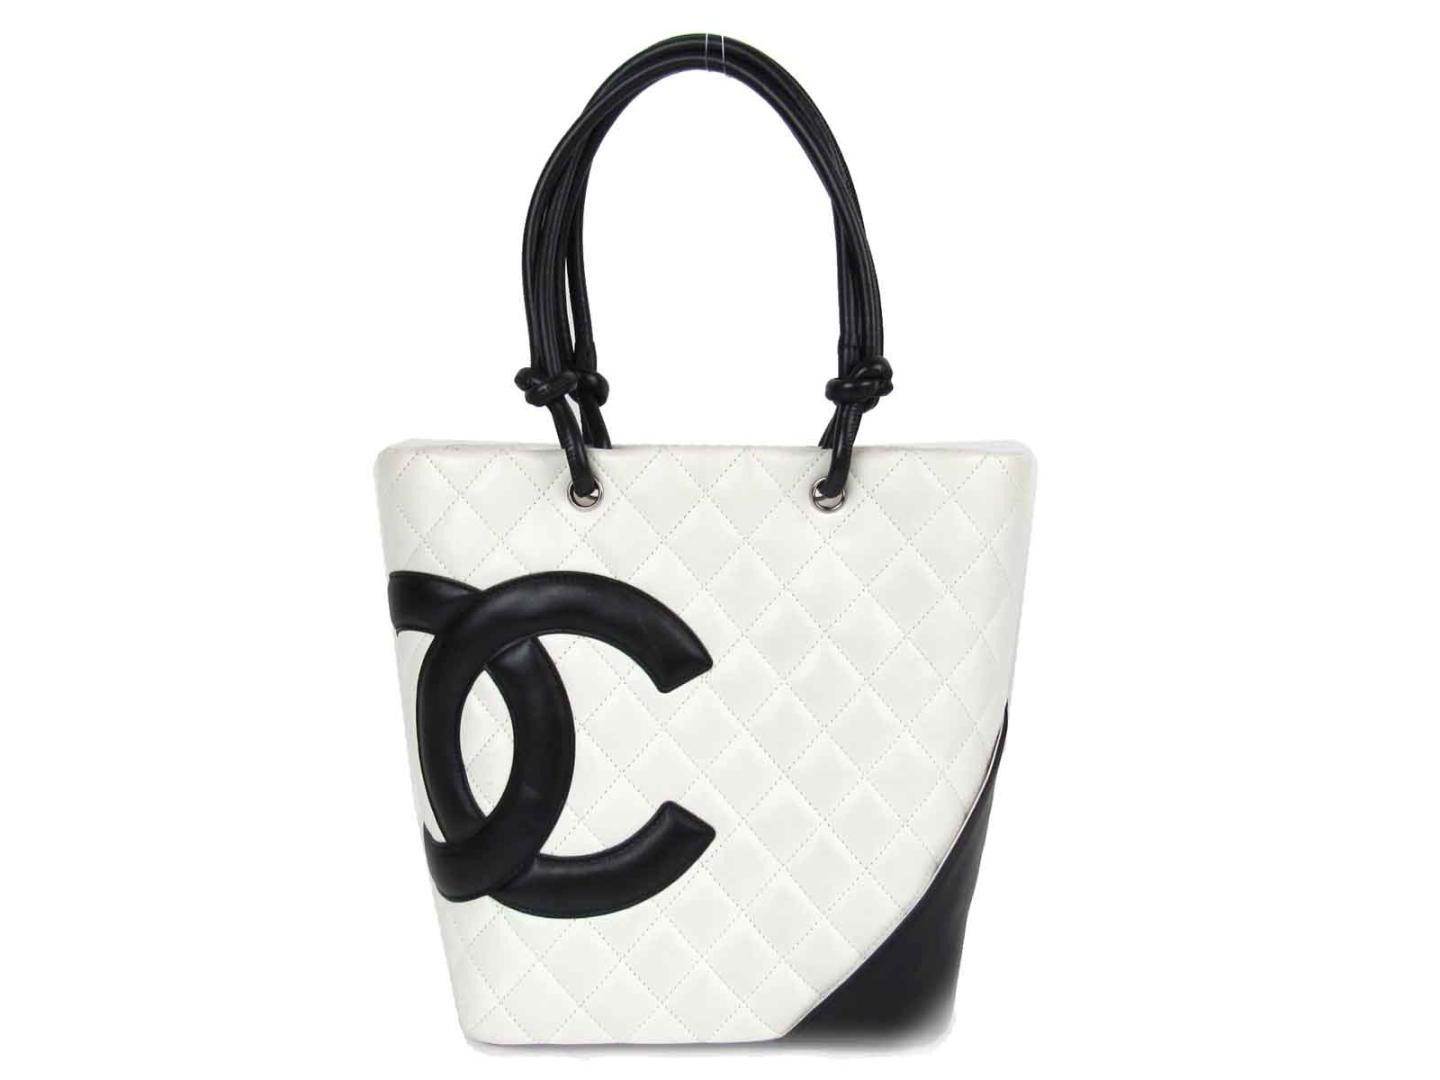 6f998ebea1 Chanel Cambon Ligne Medium Tote Bag Quilted Lambskin Leather White ...